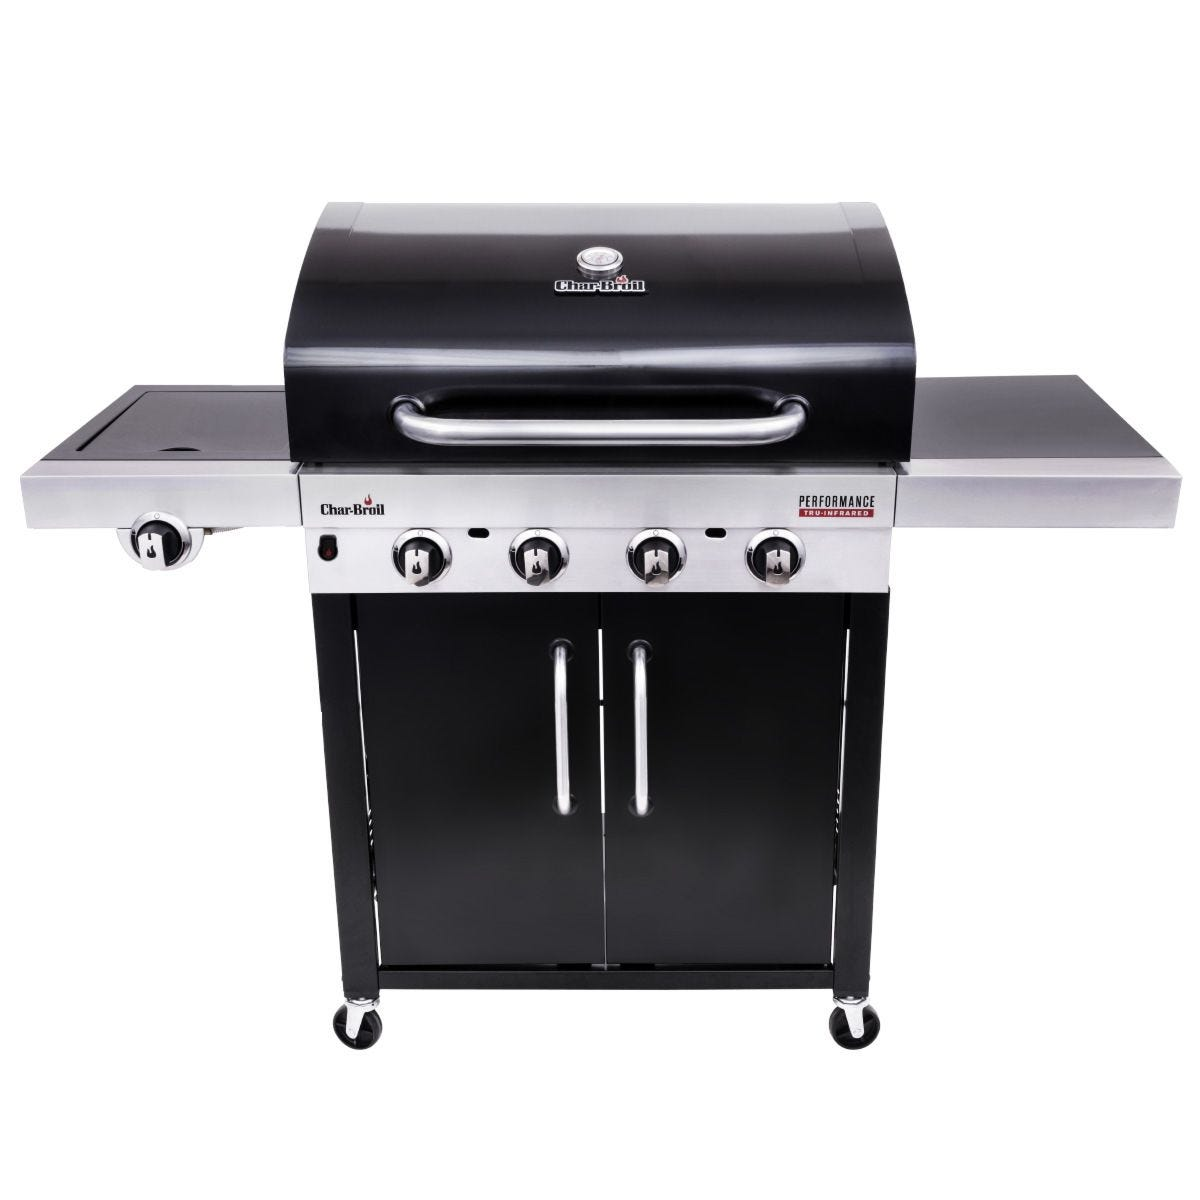 Char-Broil Performance 440B 4 Burner Gas BBQ - Black